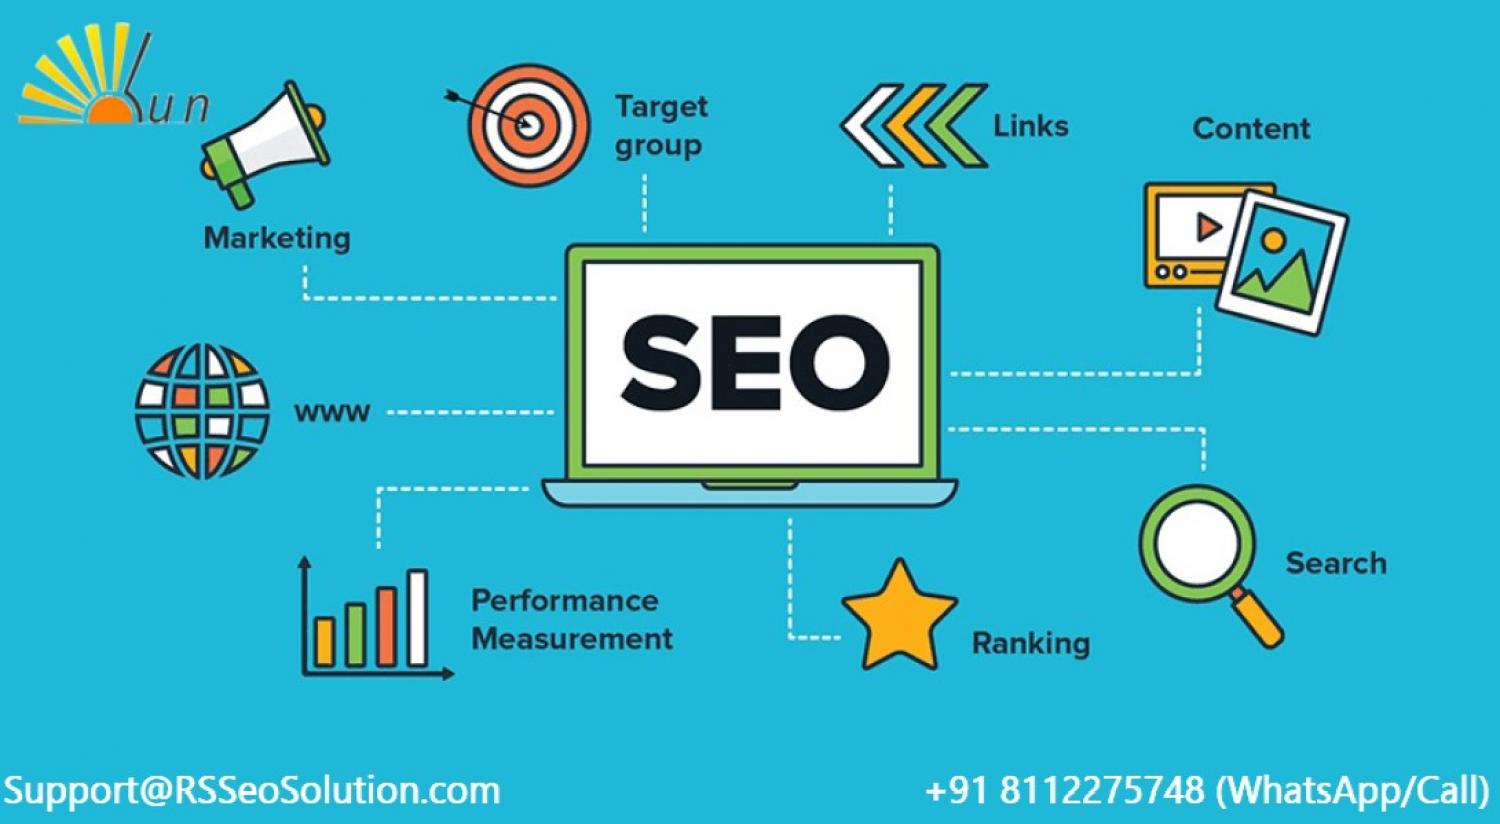 SEO Services Helps Websites to Get Top Search Engine Rankings